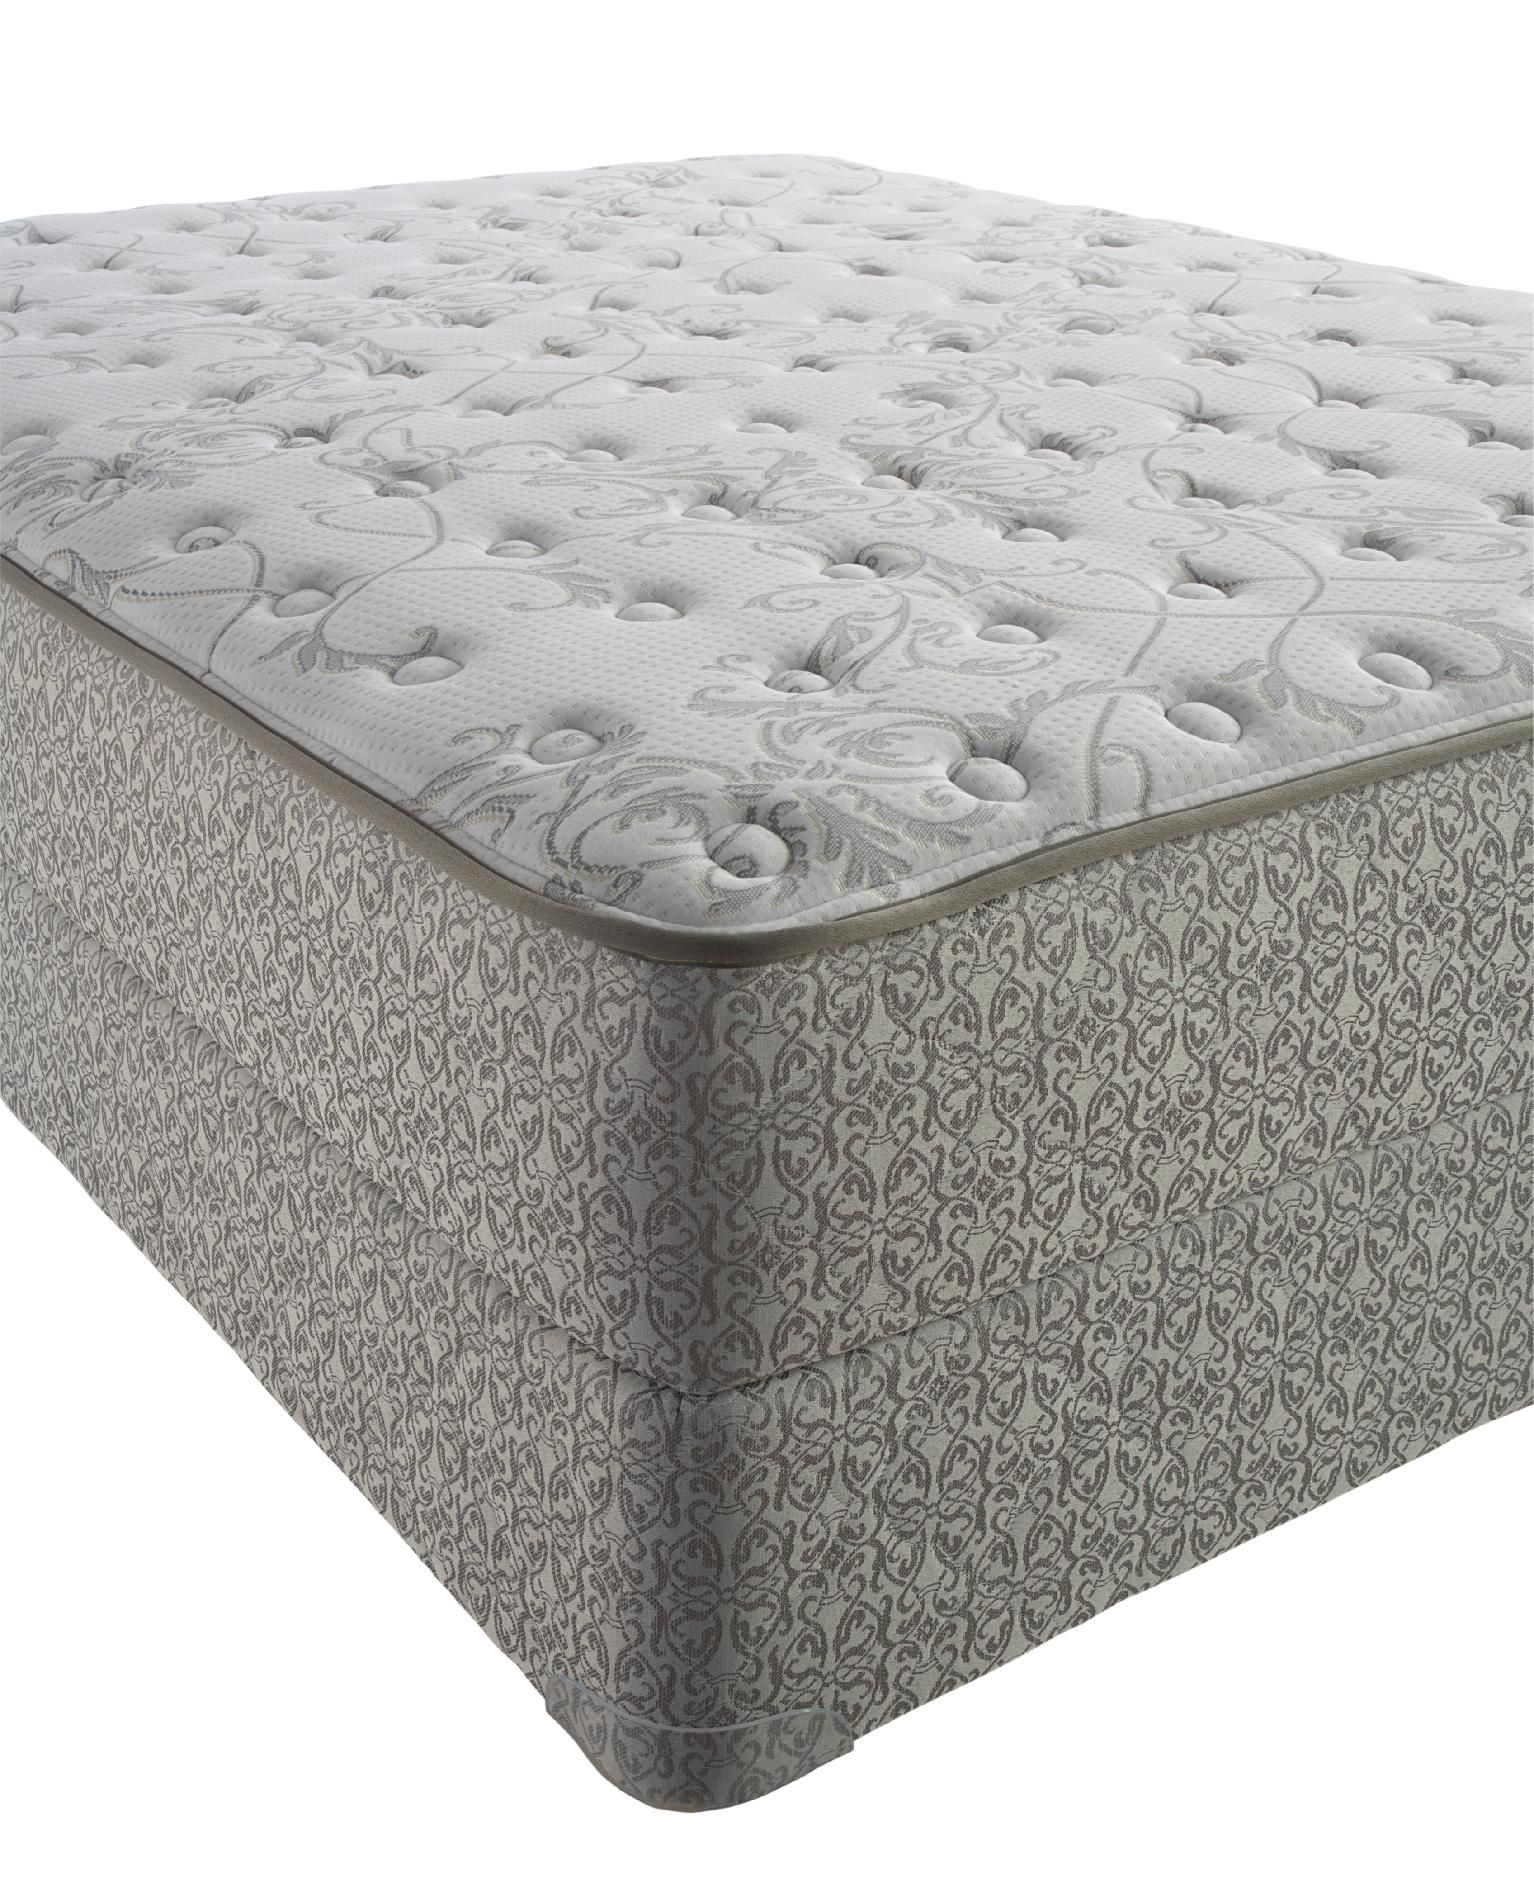 Amici-Select-Firm-Cal-King-Mattress-Only